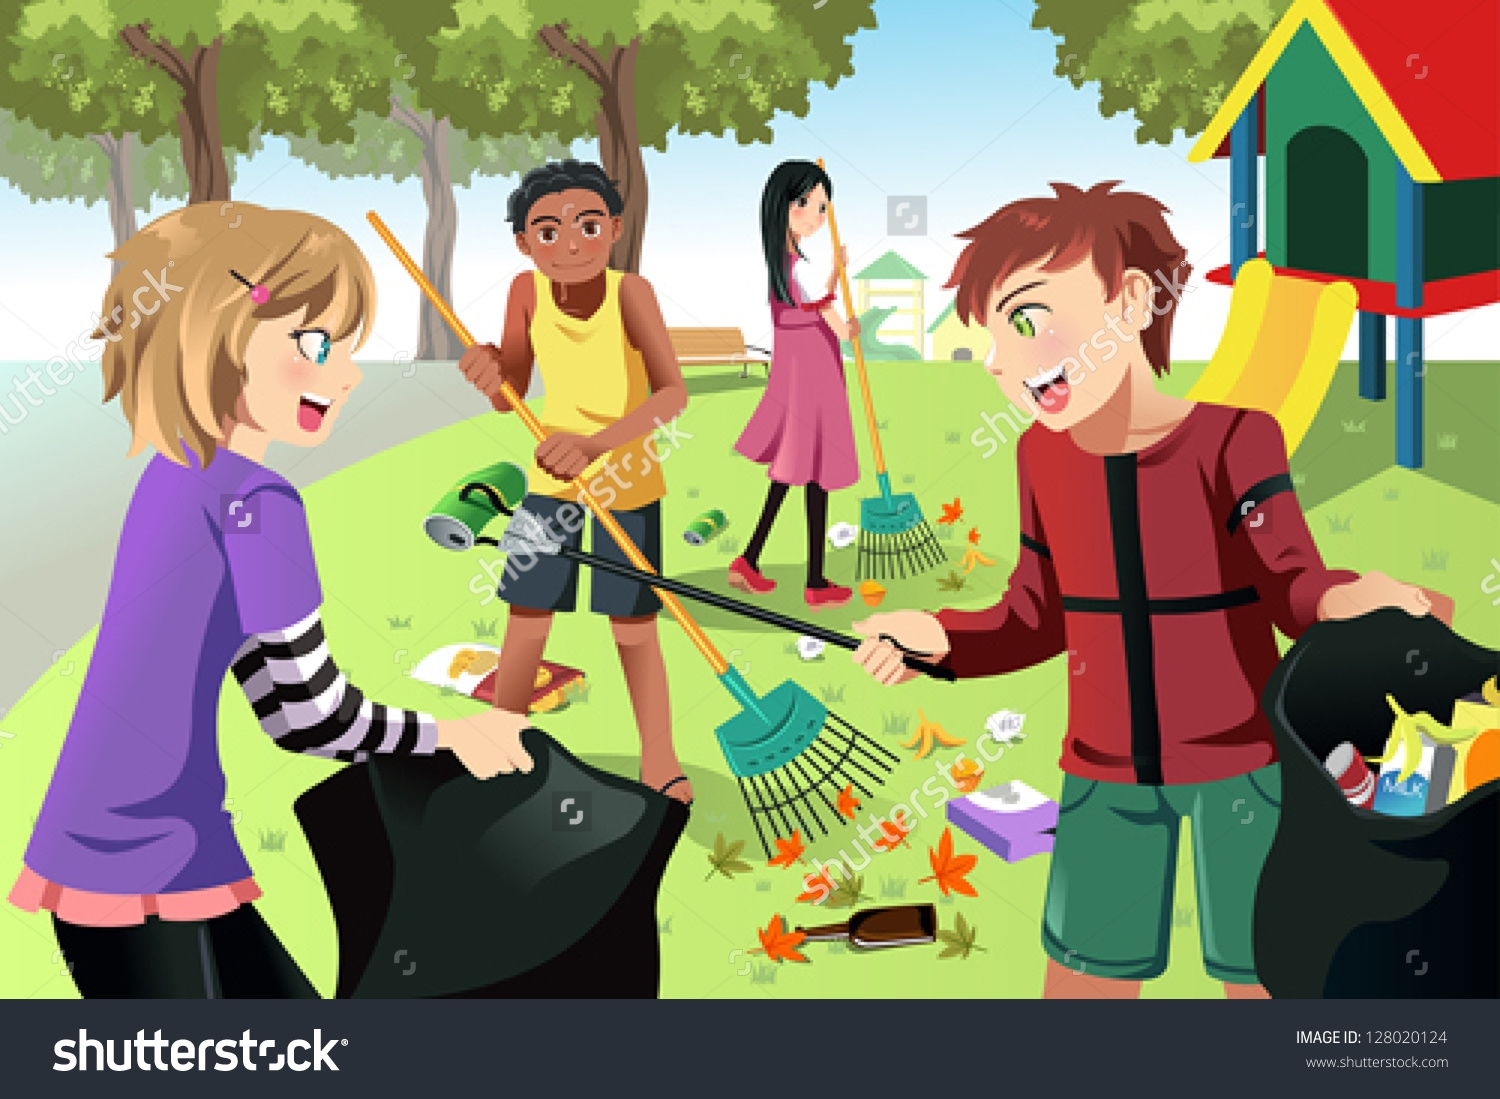 Of station . Environment clipart cleanliness surroundings